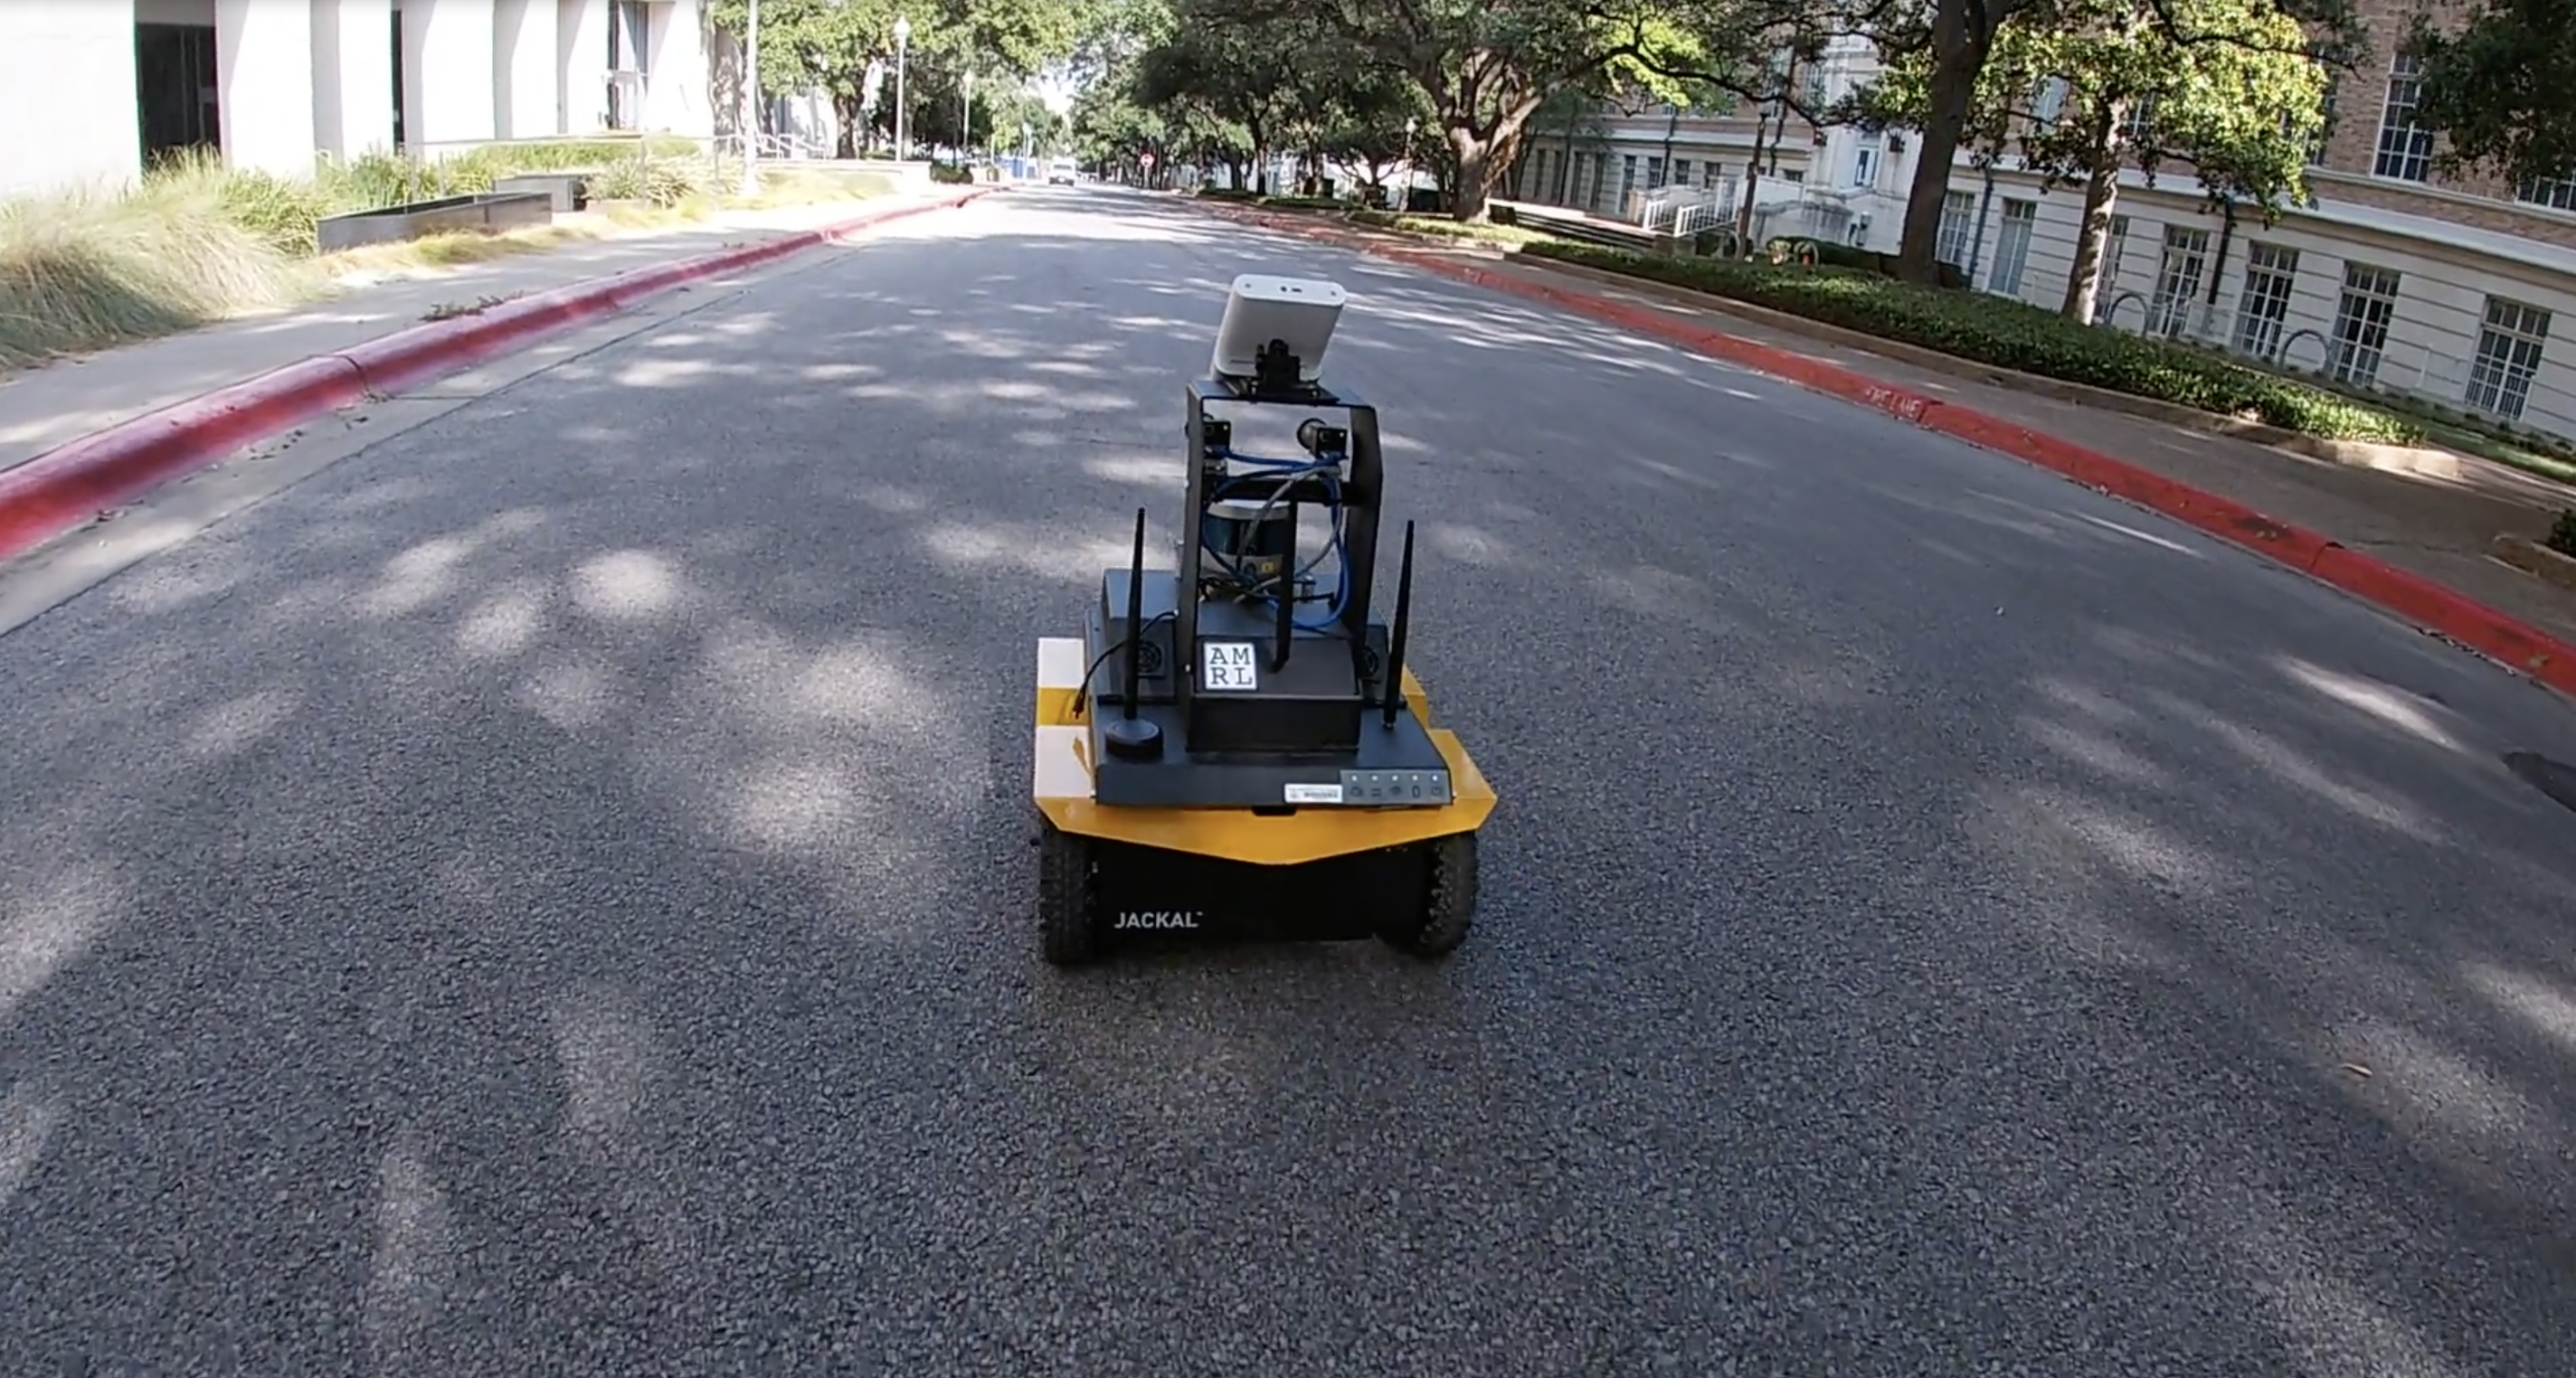 A Jackal robot delivers lemonade on The University of Texas at Austin campus.